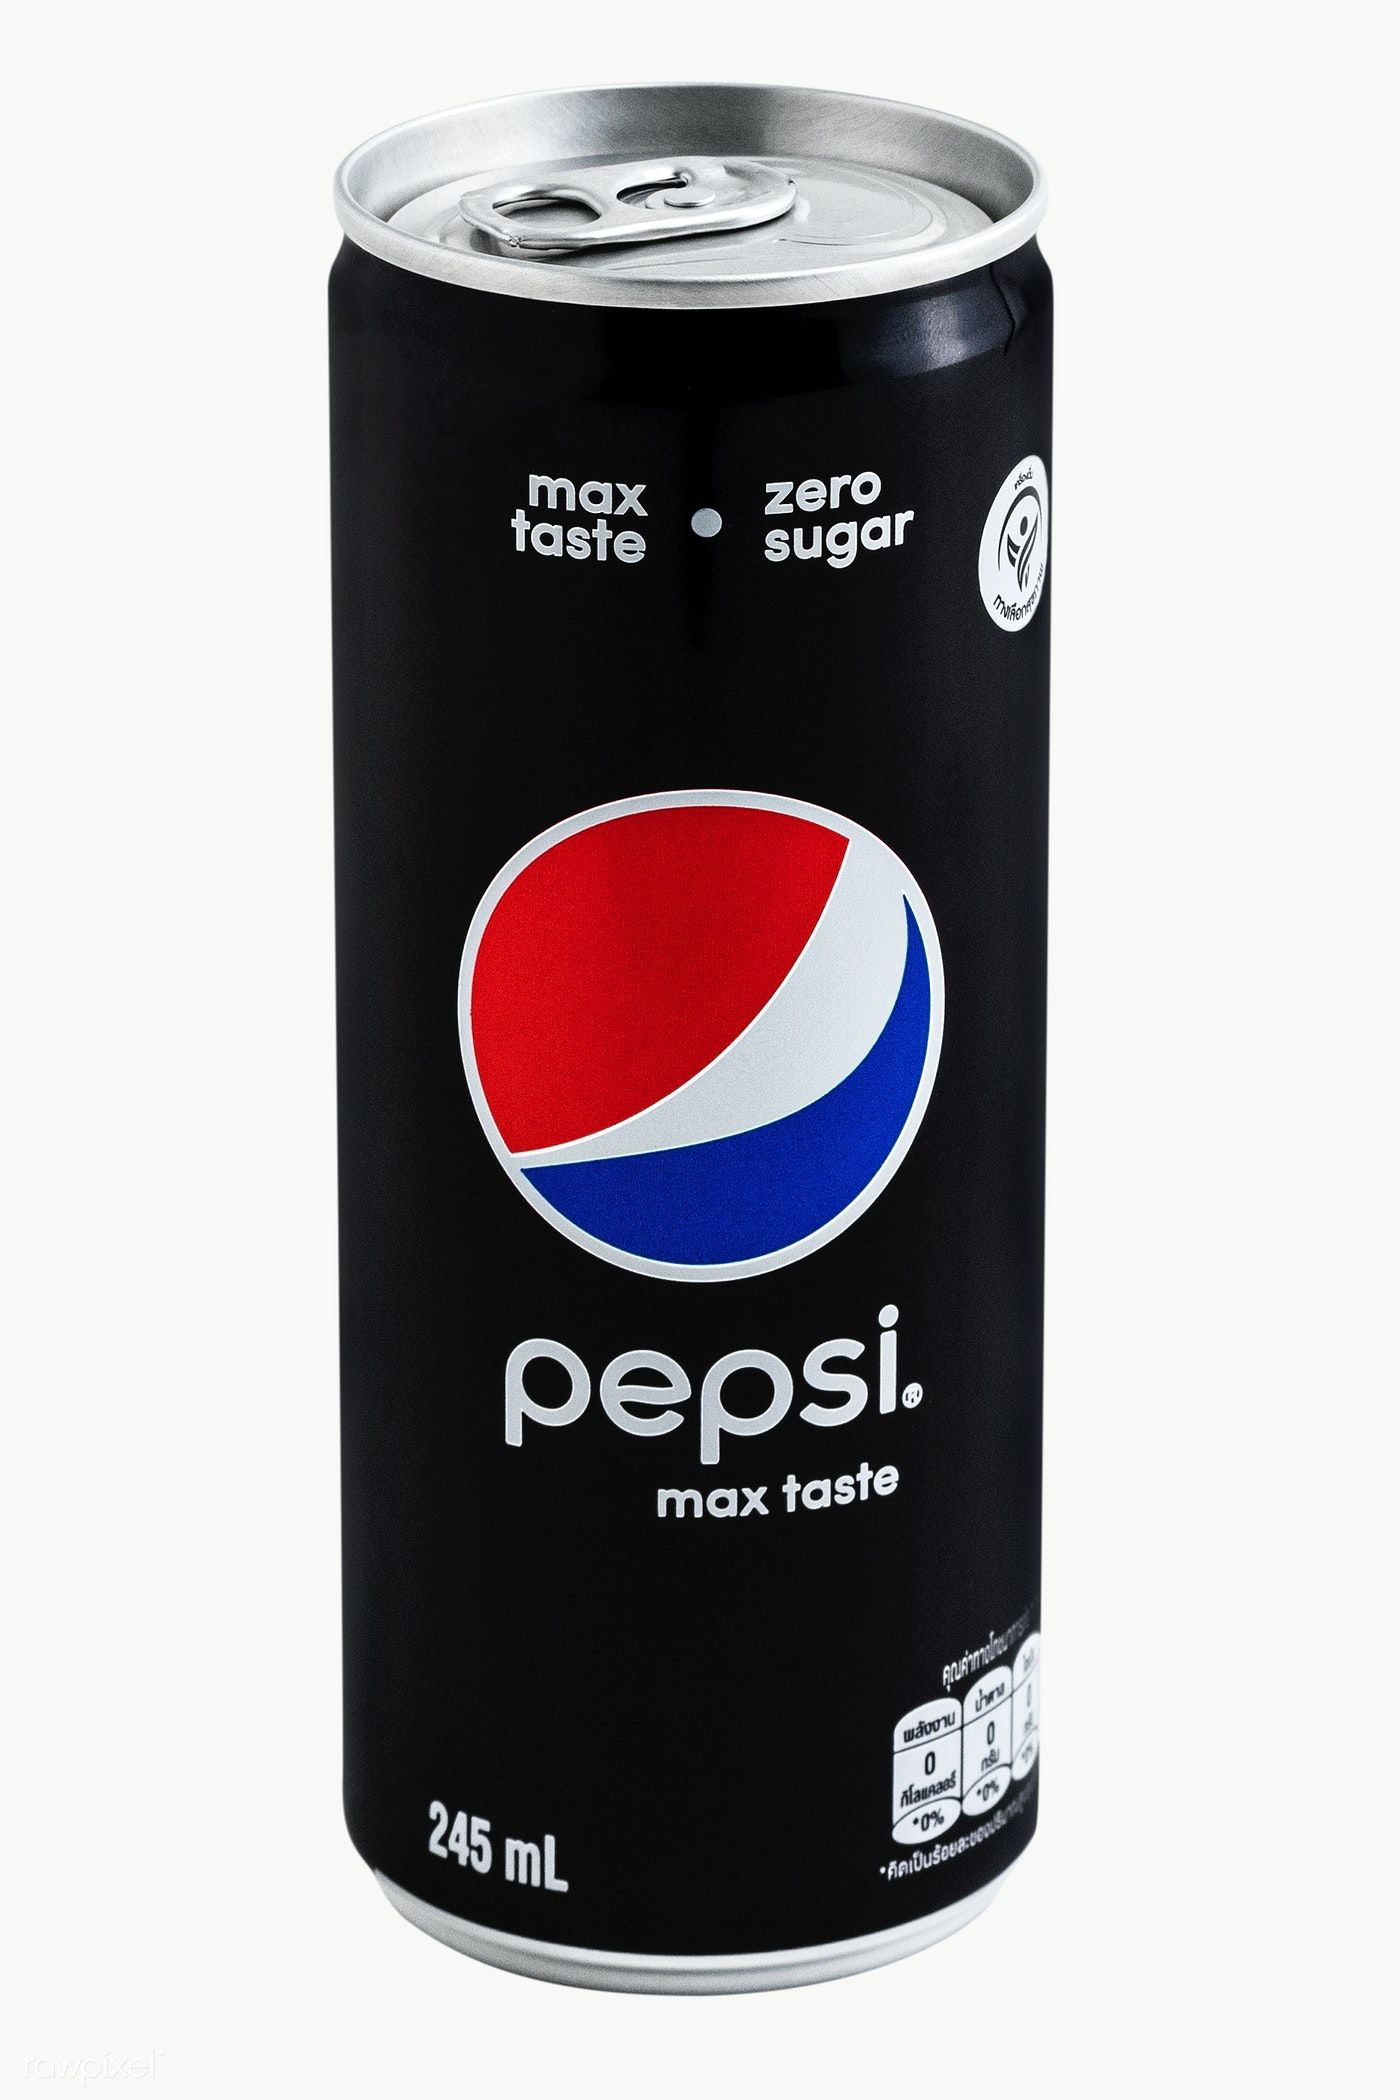 Cold Pepsi Max Taste In A Can January 29 2020 Bangkok Thailand Free Image By Rawpixel Com Teddy Rawpixel Pepsi Beverage Packaging Pepsi Cola